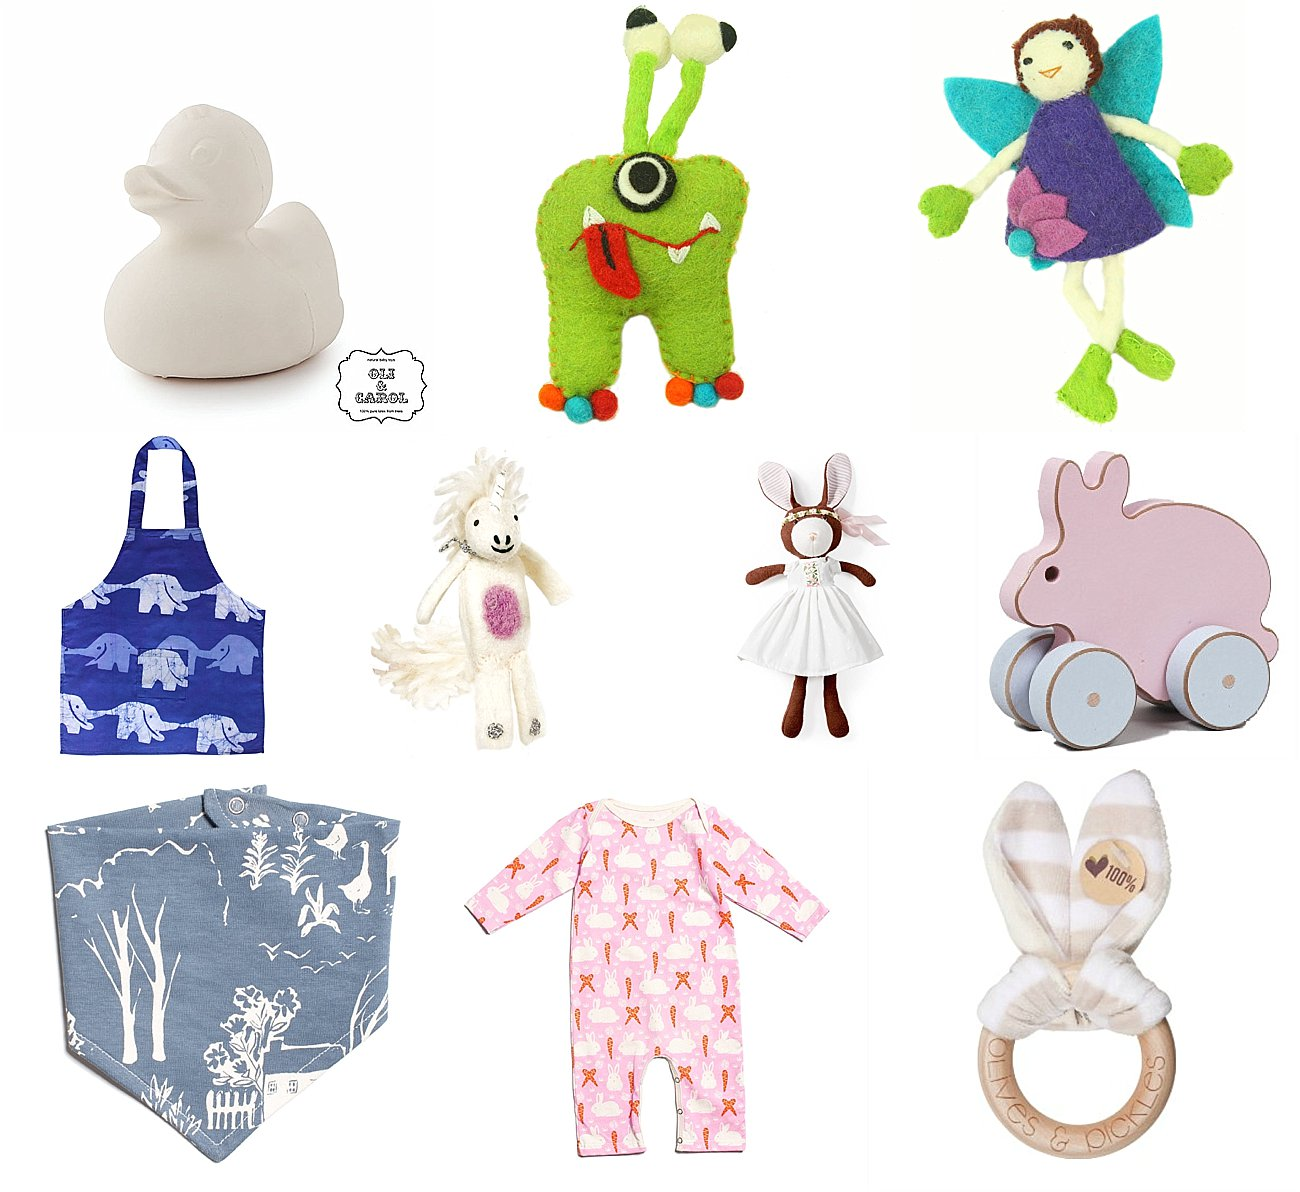 Ethical Easter Gifts for Your Kiddo's Easter Baskets (5)